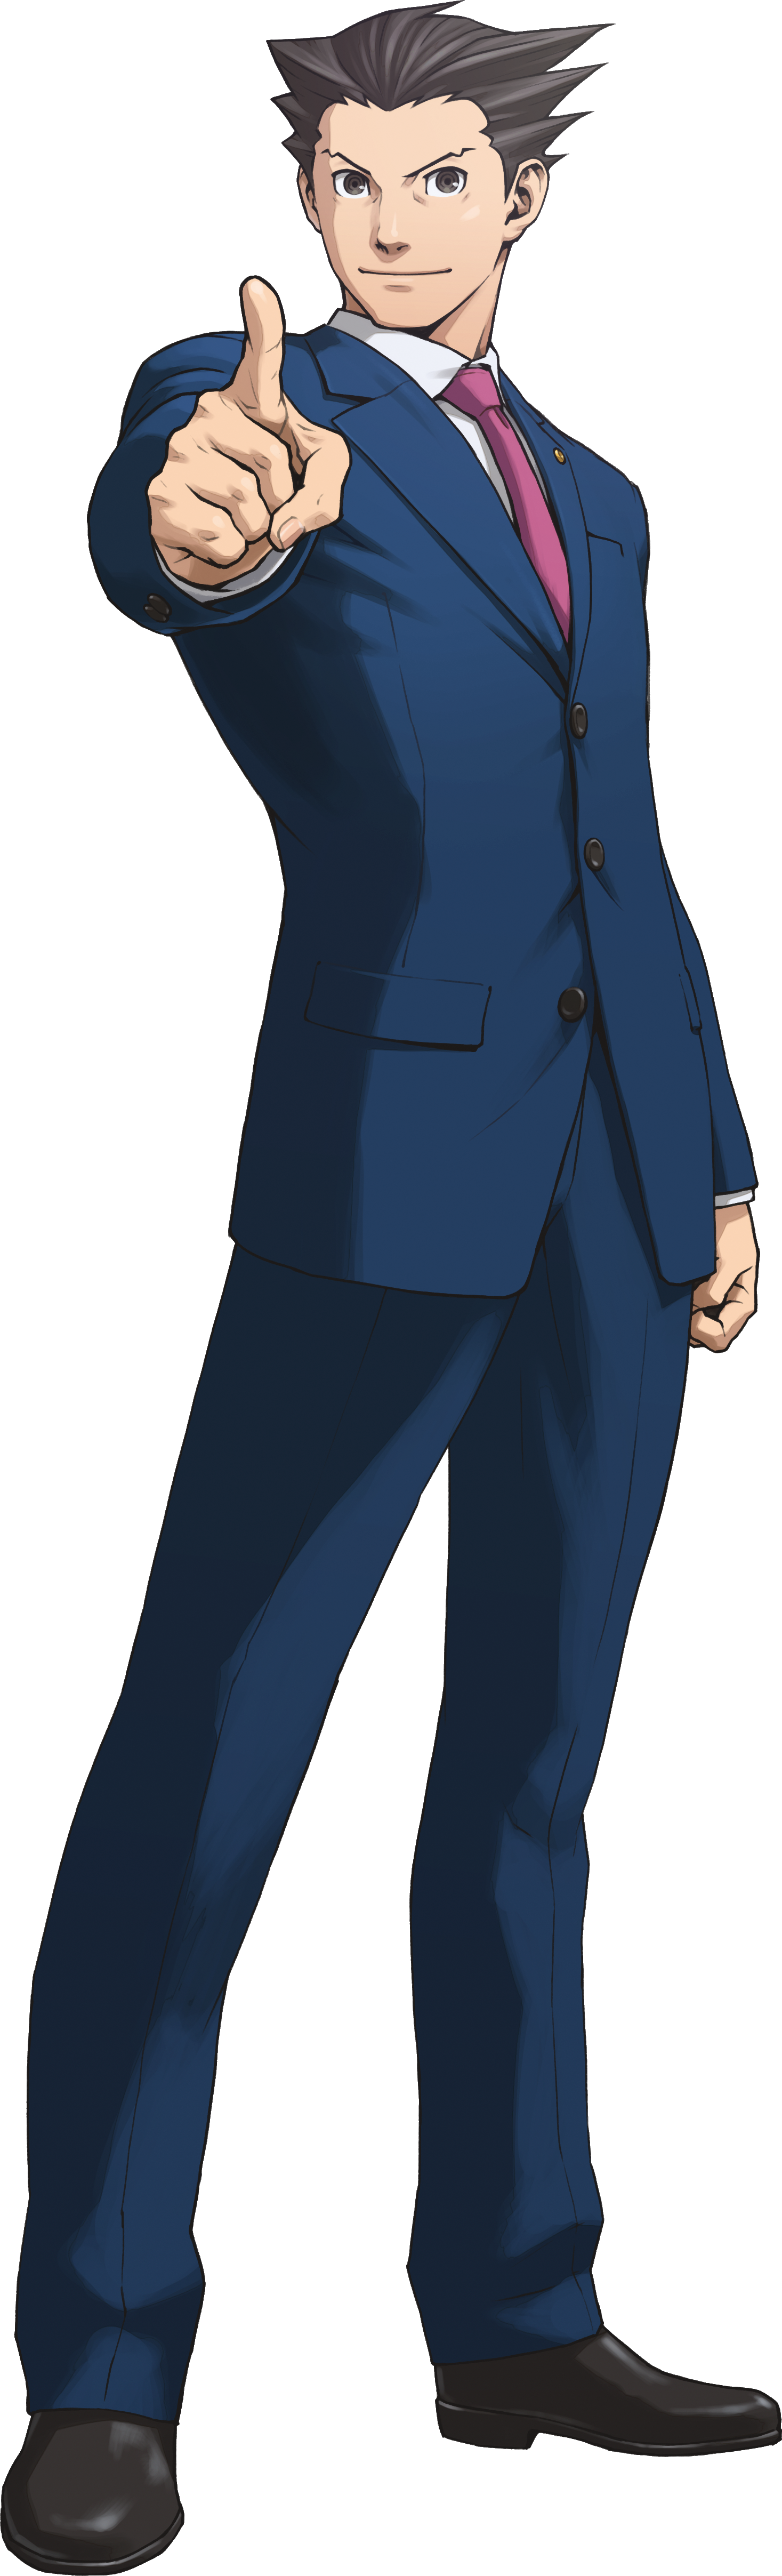 Ace Attorney PNG